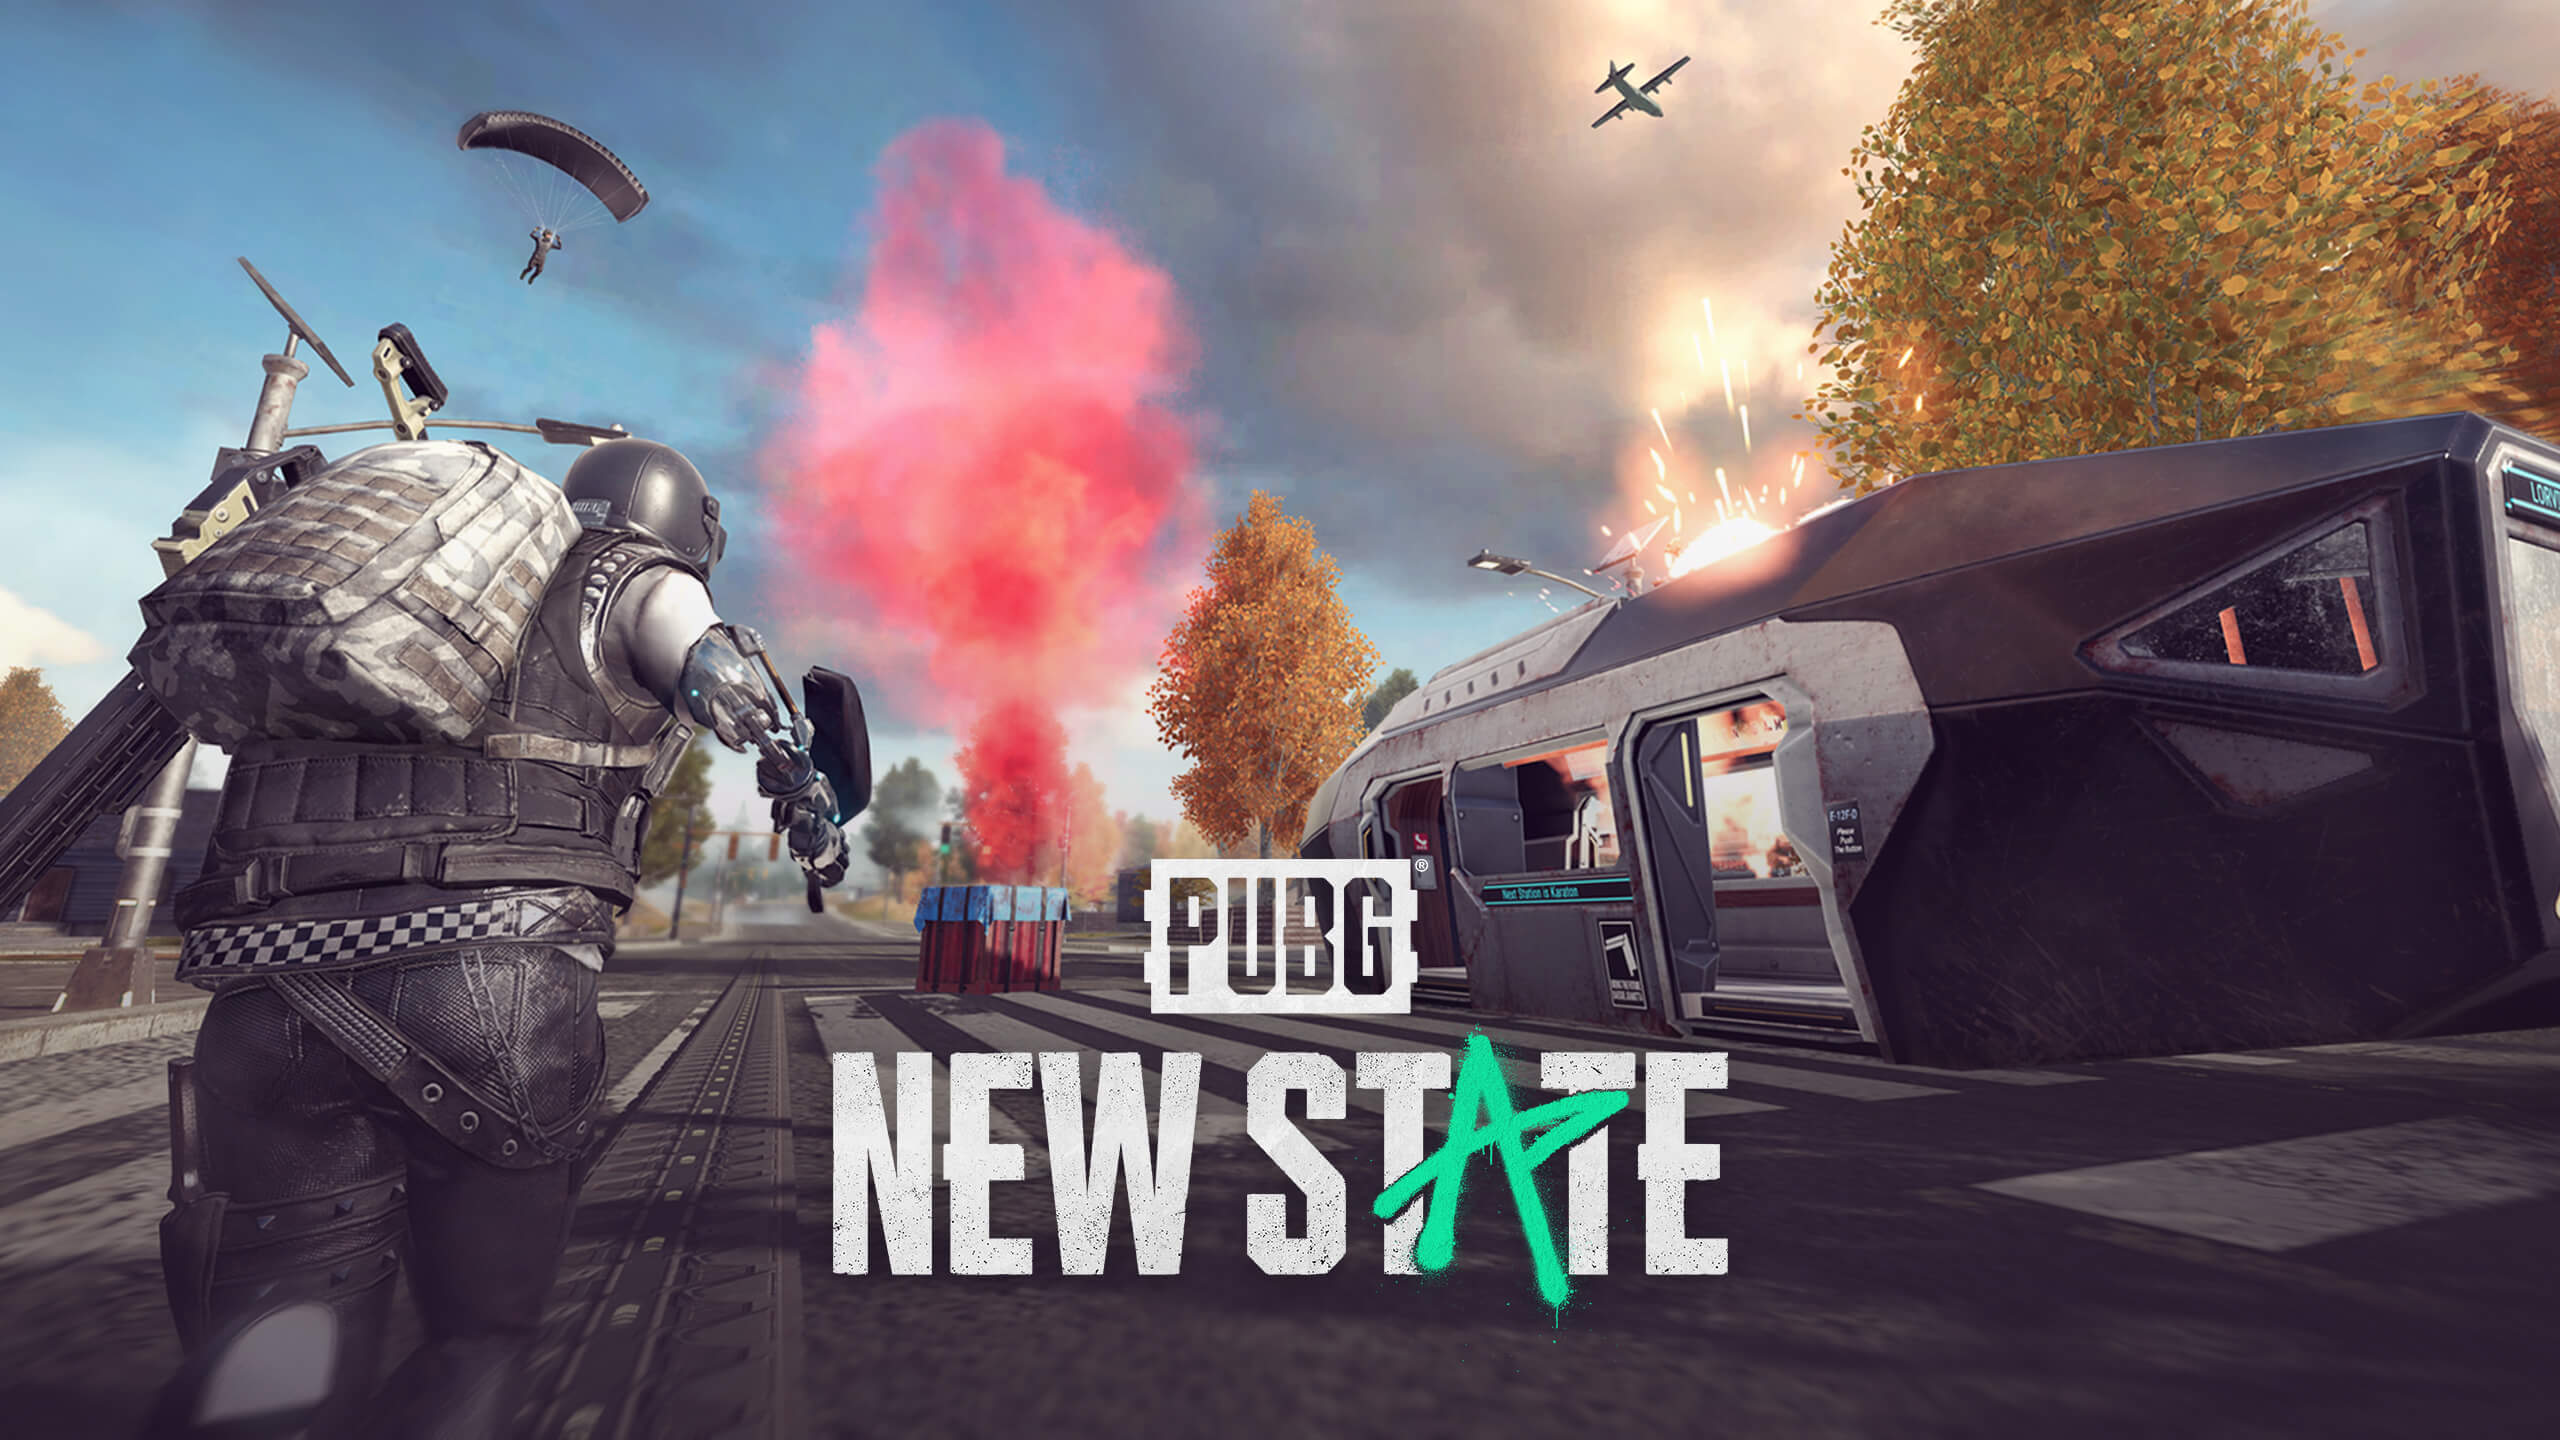 'PUBG: New State' Is the Newest Battle Royale from PUBG Studio and Krafton Set for Release This Year on iOS and Android with Pre-Registrations Now Live on Google Play